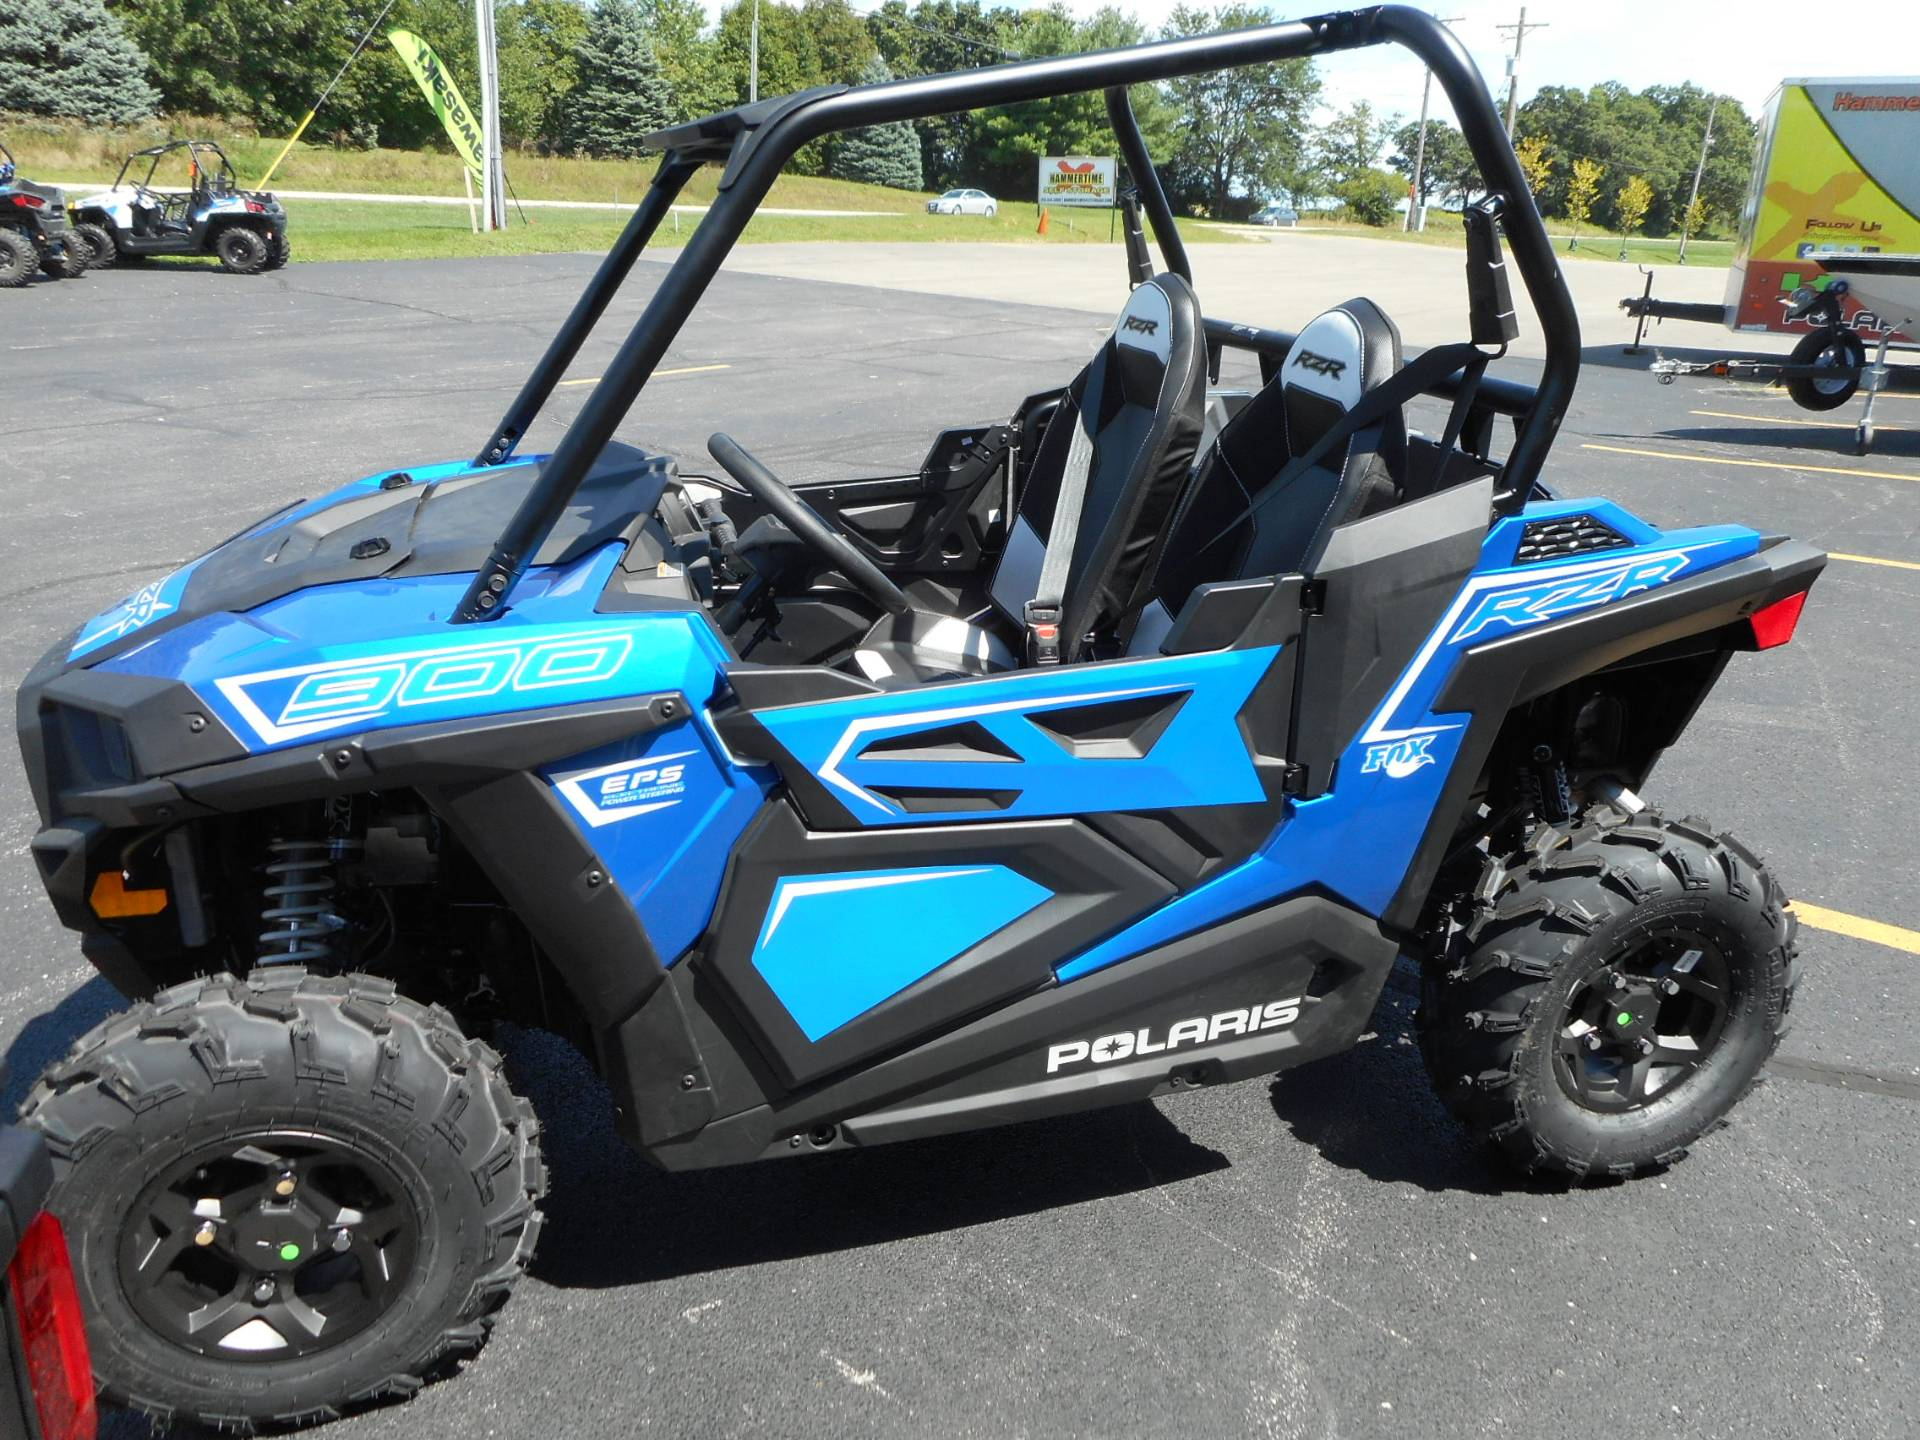 2020 Polaris RZR 900 EPS FOX Edition in Belvidere, Illinois - Photo 2